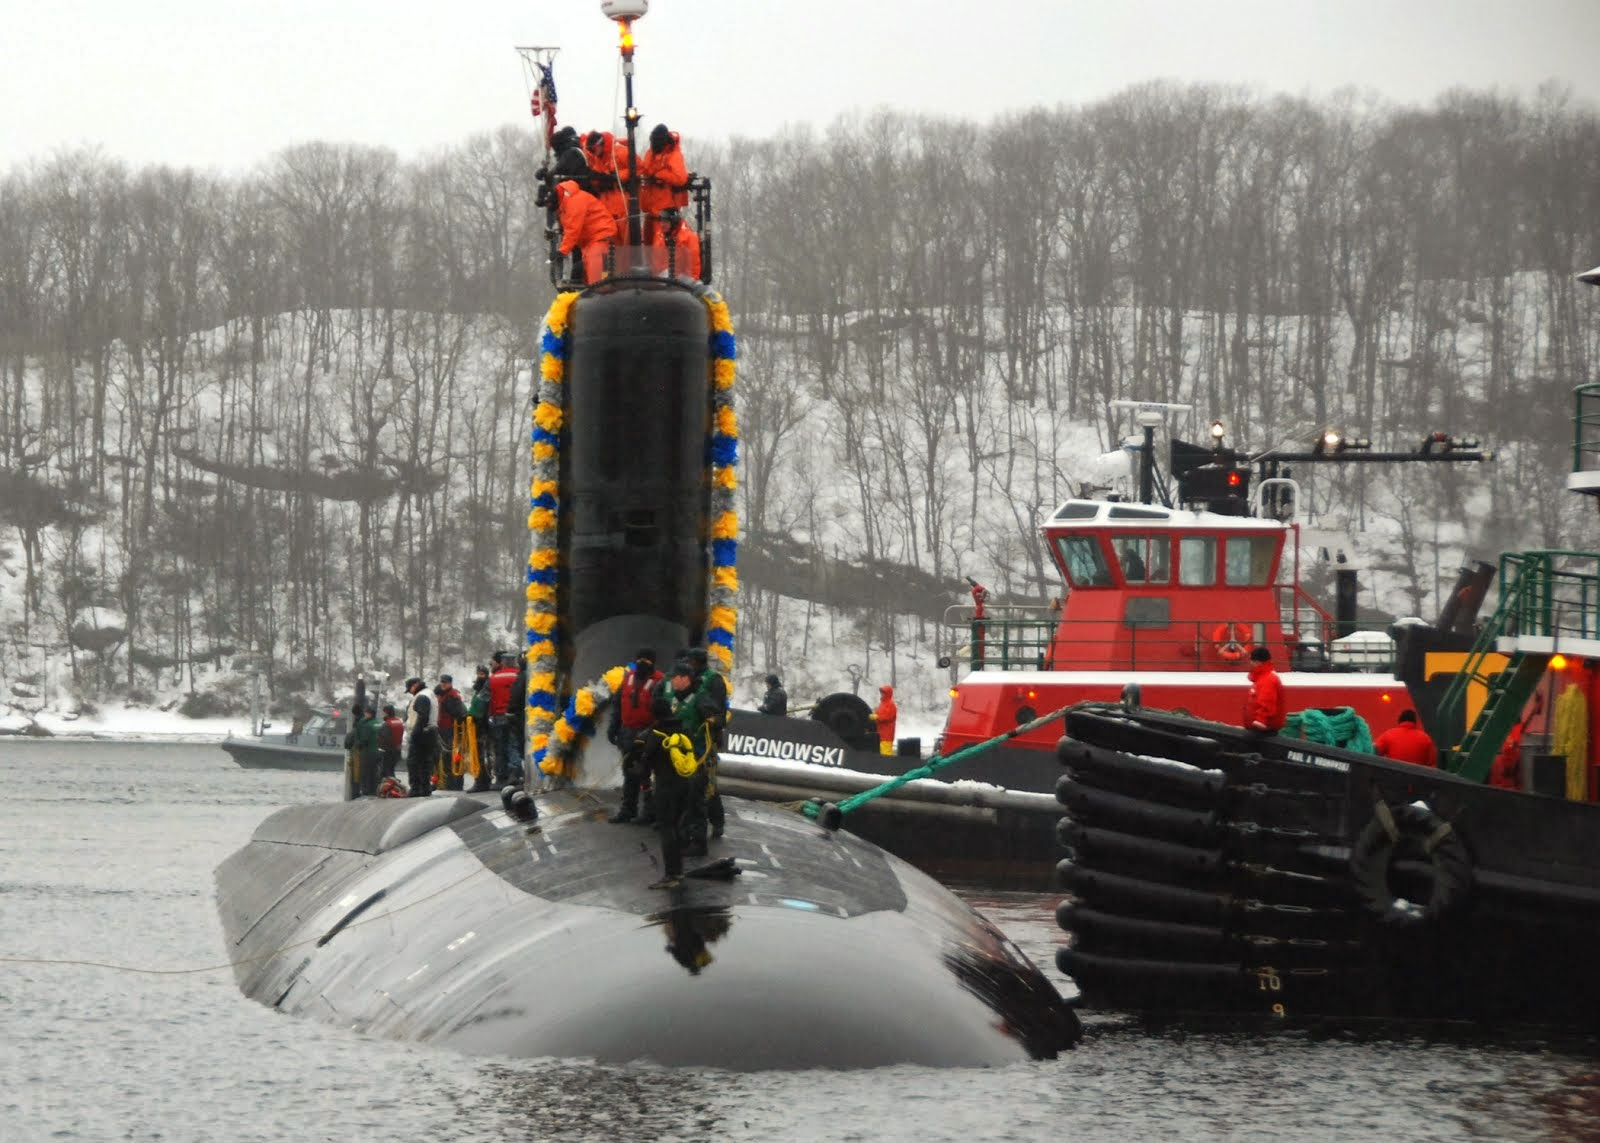 USS VIRGINIA ARRIVES AT SUBMARINE BASE